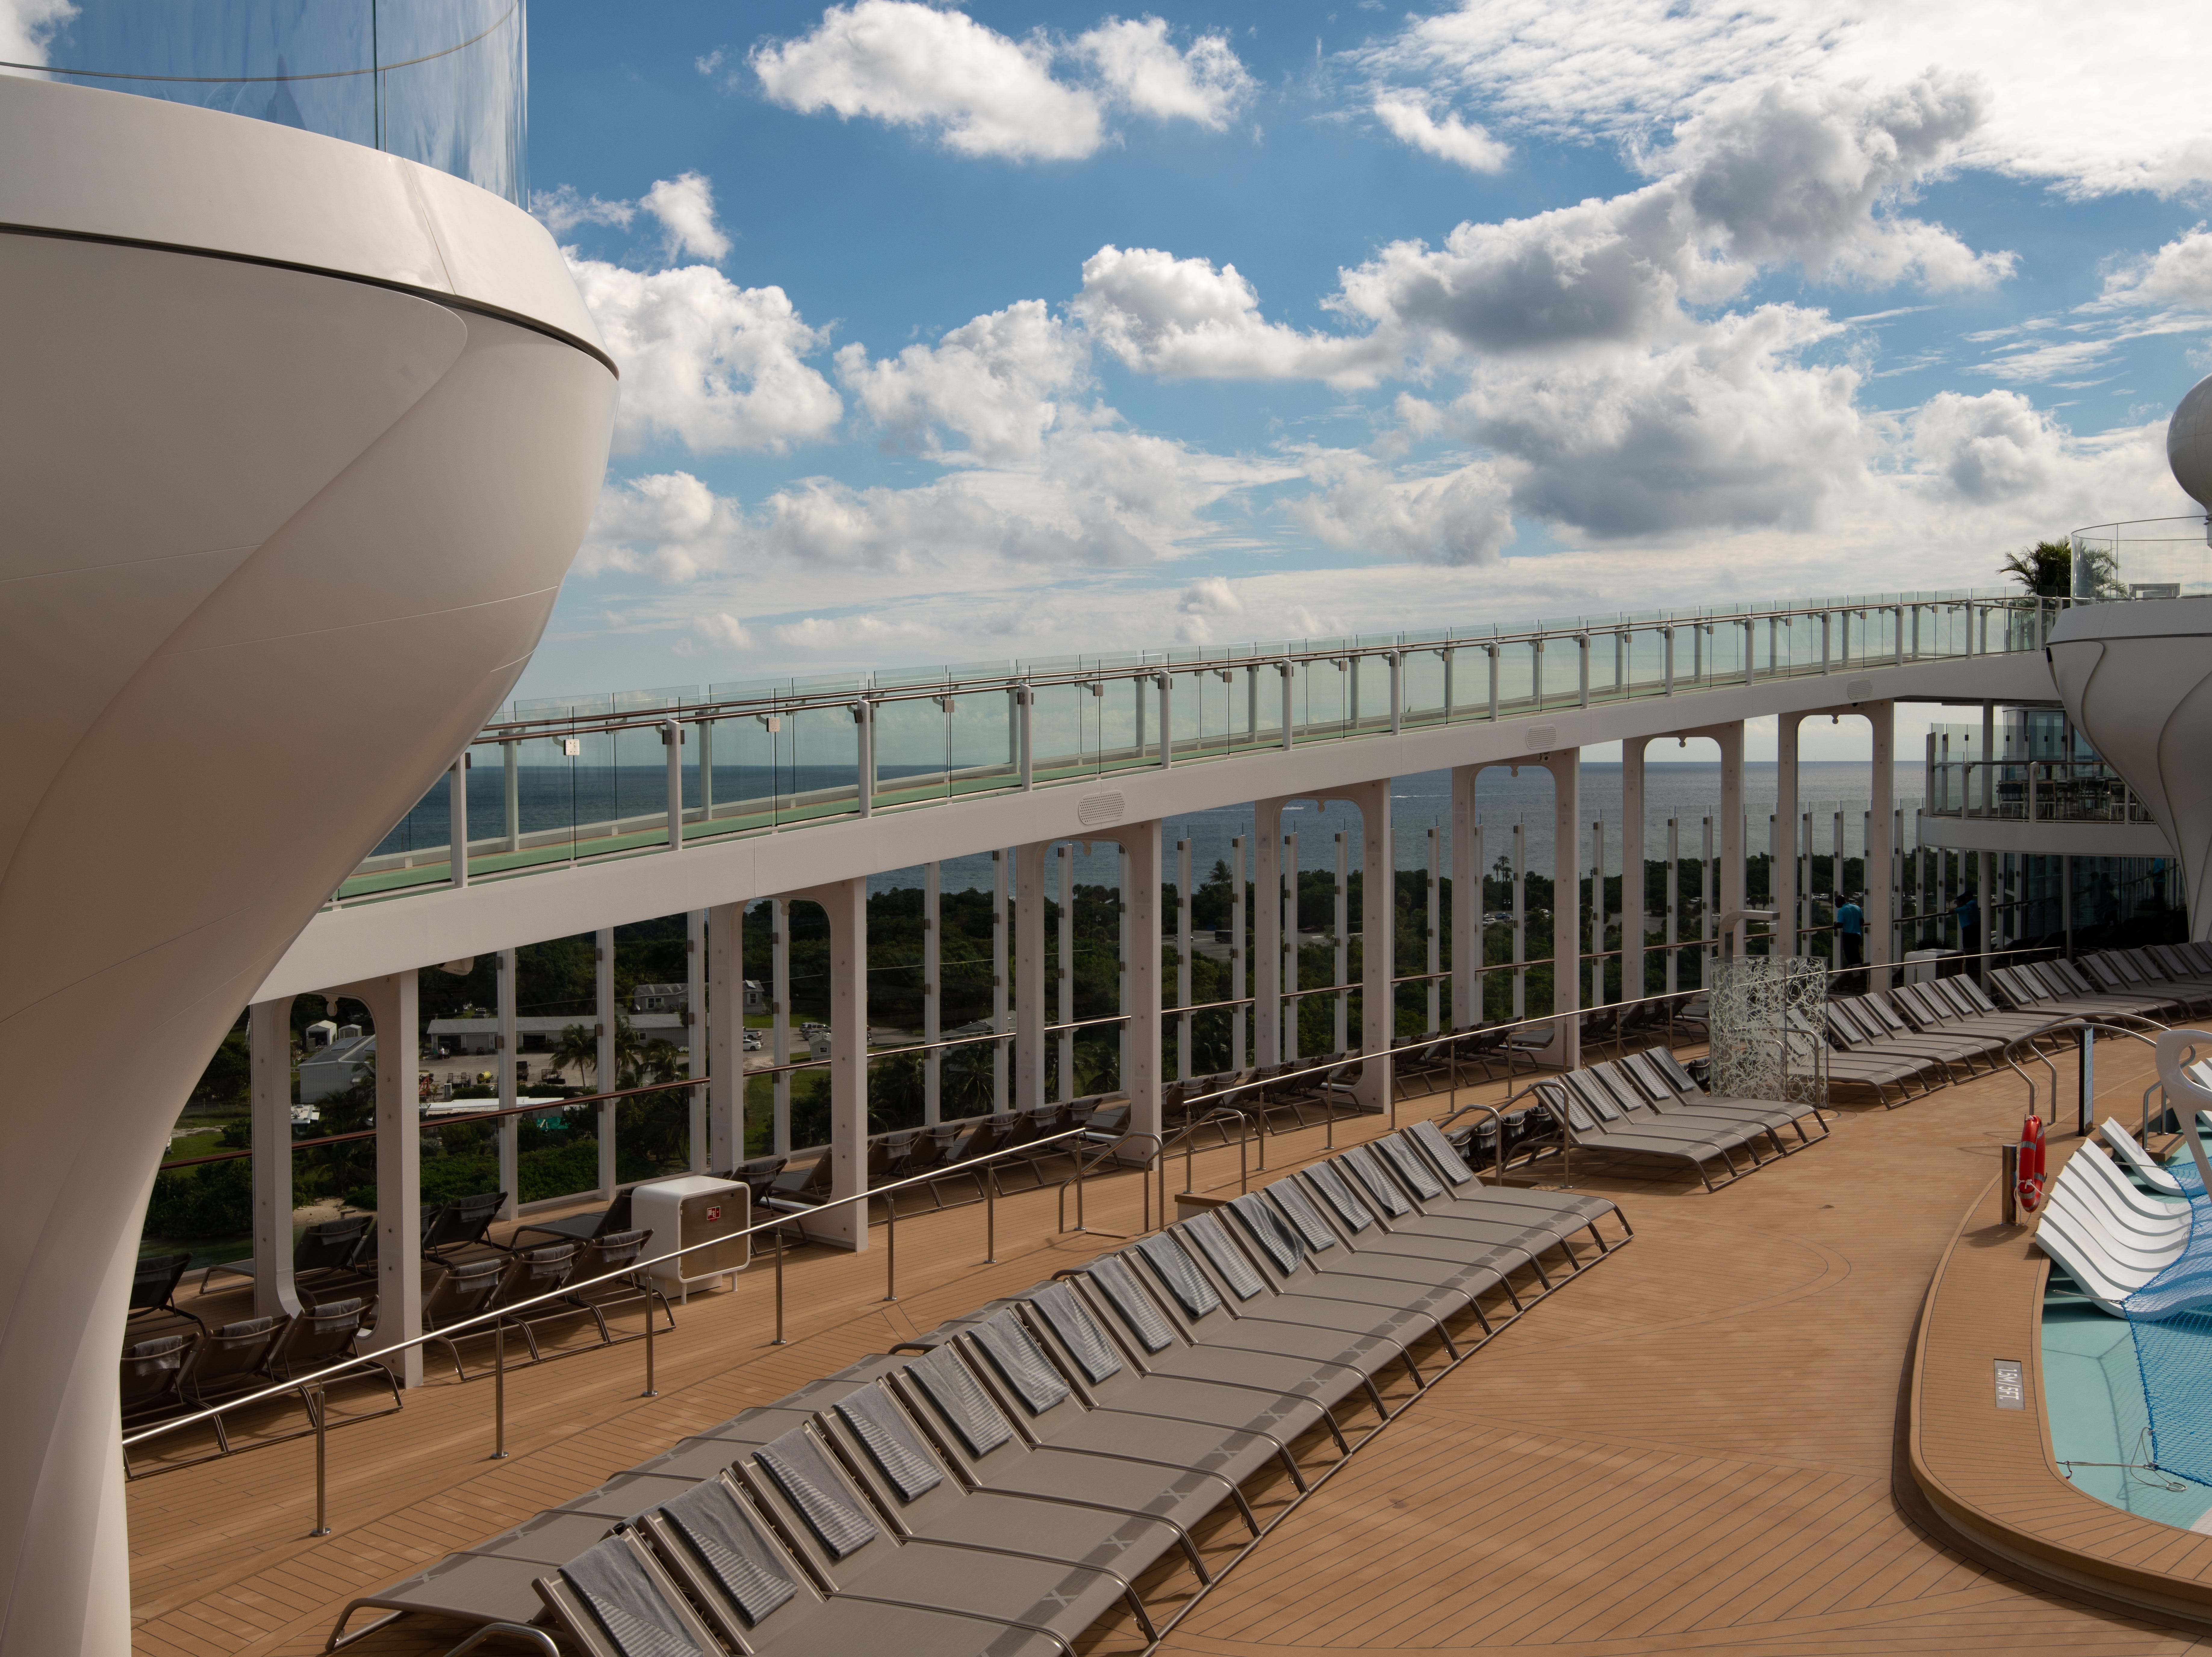 Celebrity Edge's Pool Deck is unusual in its openness to the sea. Soaring, wall-to-wall glass lines its sides, which also feature an asymmetrical jogging track.